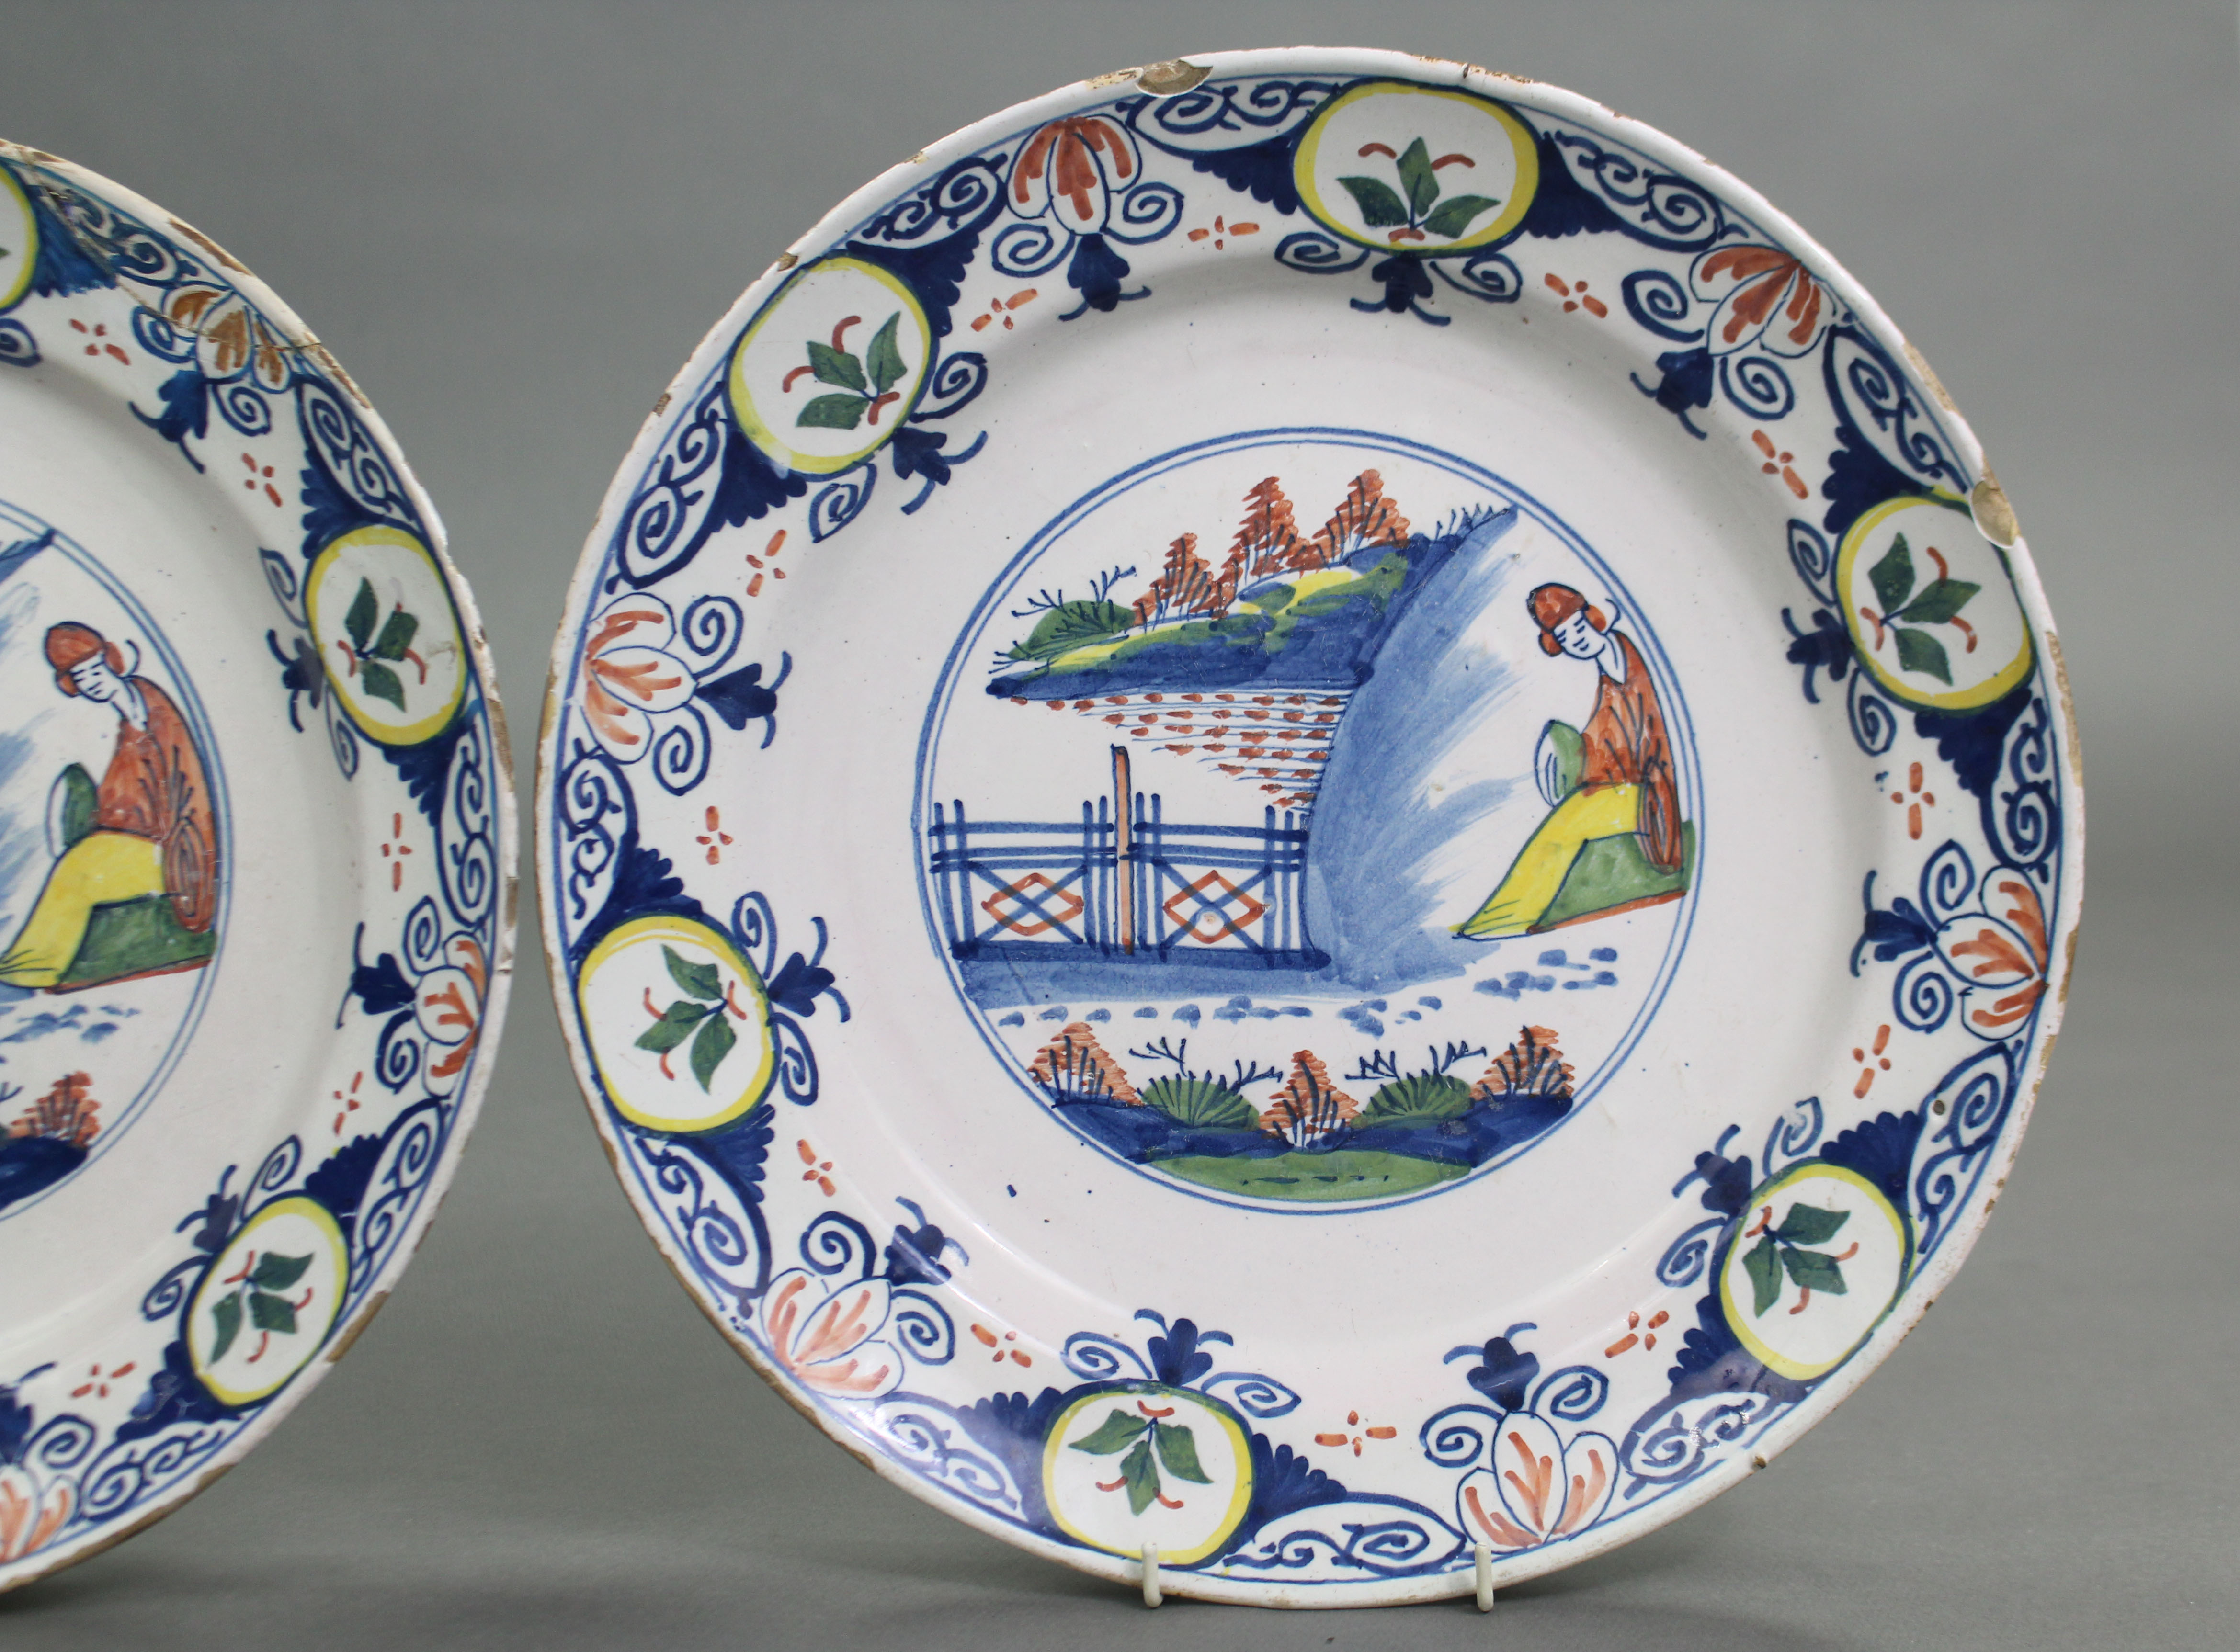 Lot 190 - A PAIR OF 18th century BRISTOL DELFT LARGE DISHES, Limekiln Lane Pottery, circa 1740, each decorated